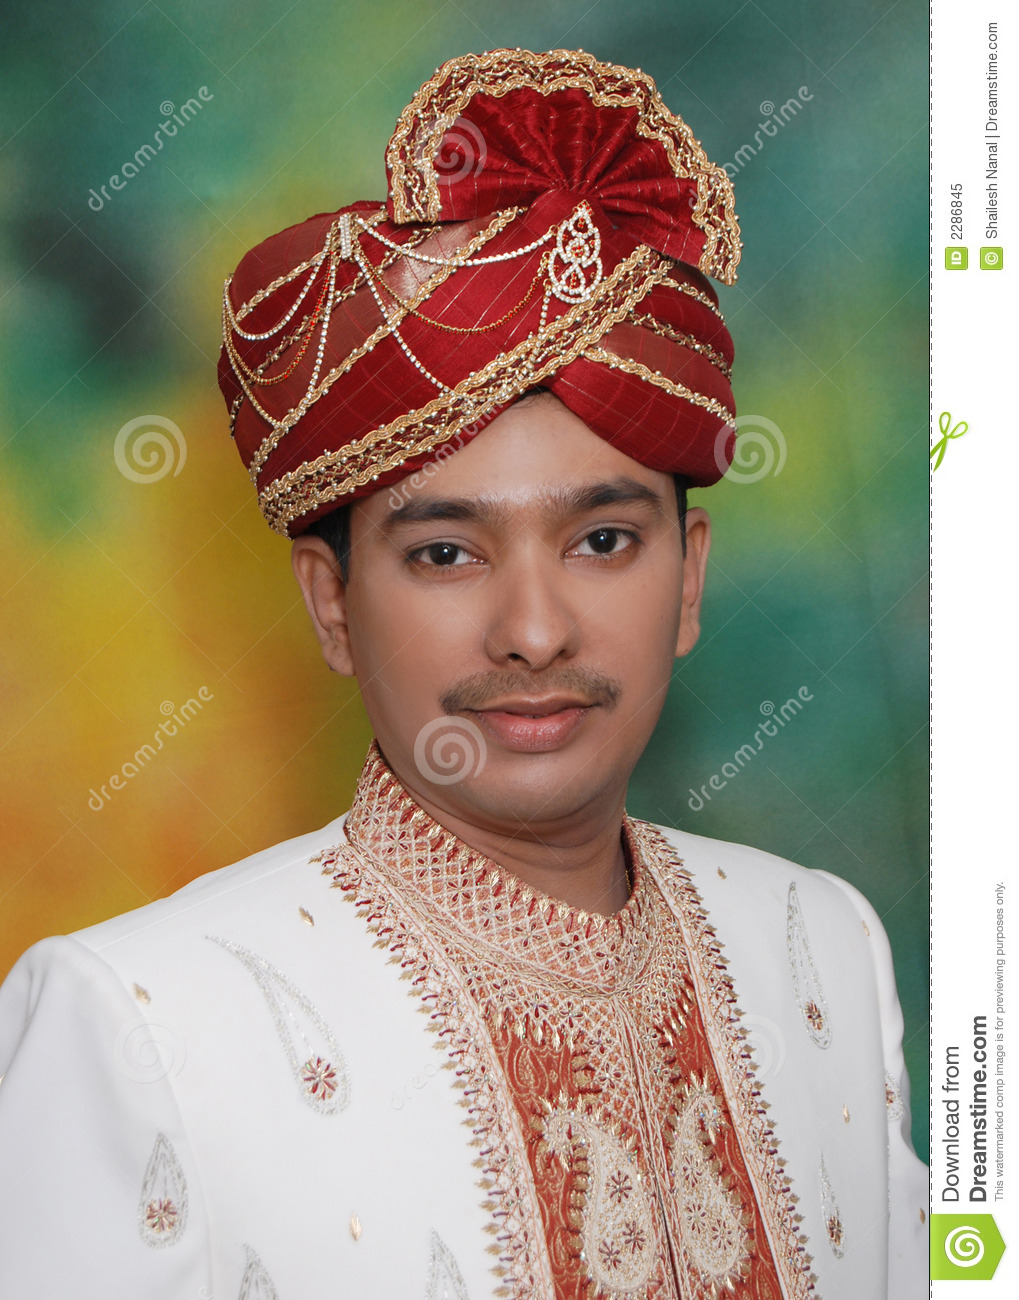 Https Www Dreamstime Com Royalty Free Stock Photo Rich Indian Prince Image2286845